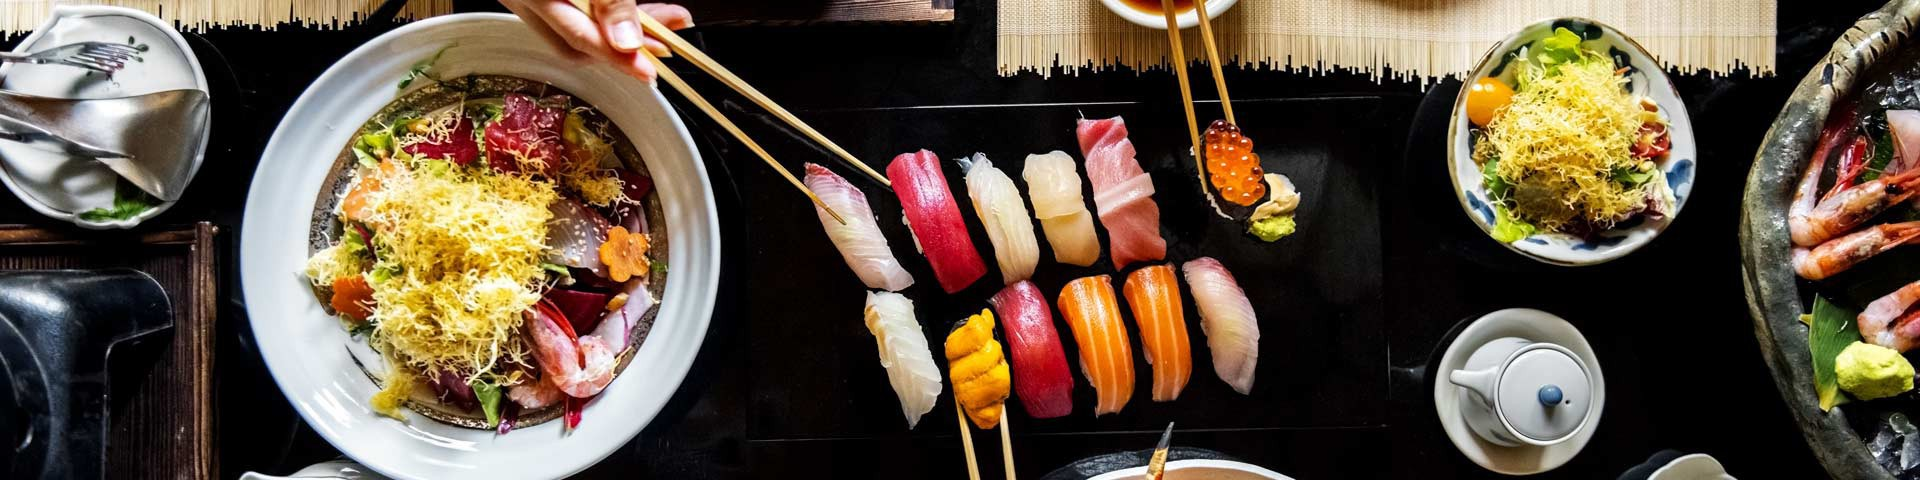 JAPANESE COOKING| MAKE EASILY YOUR OWN FRESH SUSHI AT HOME